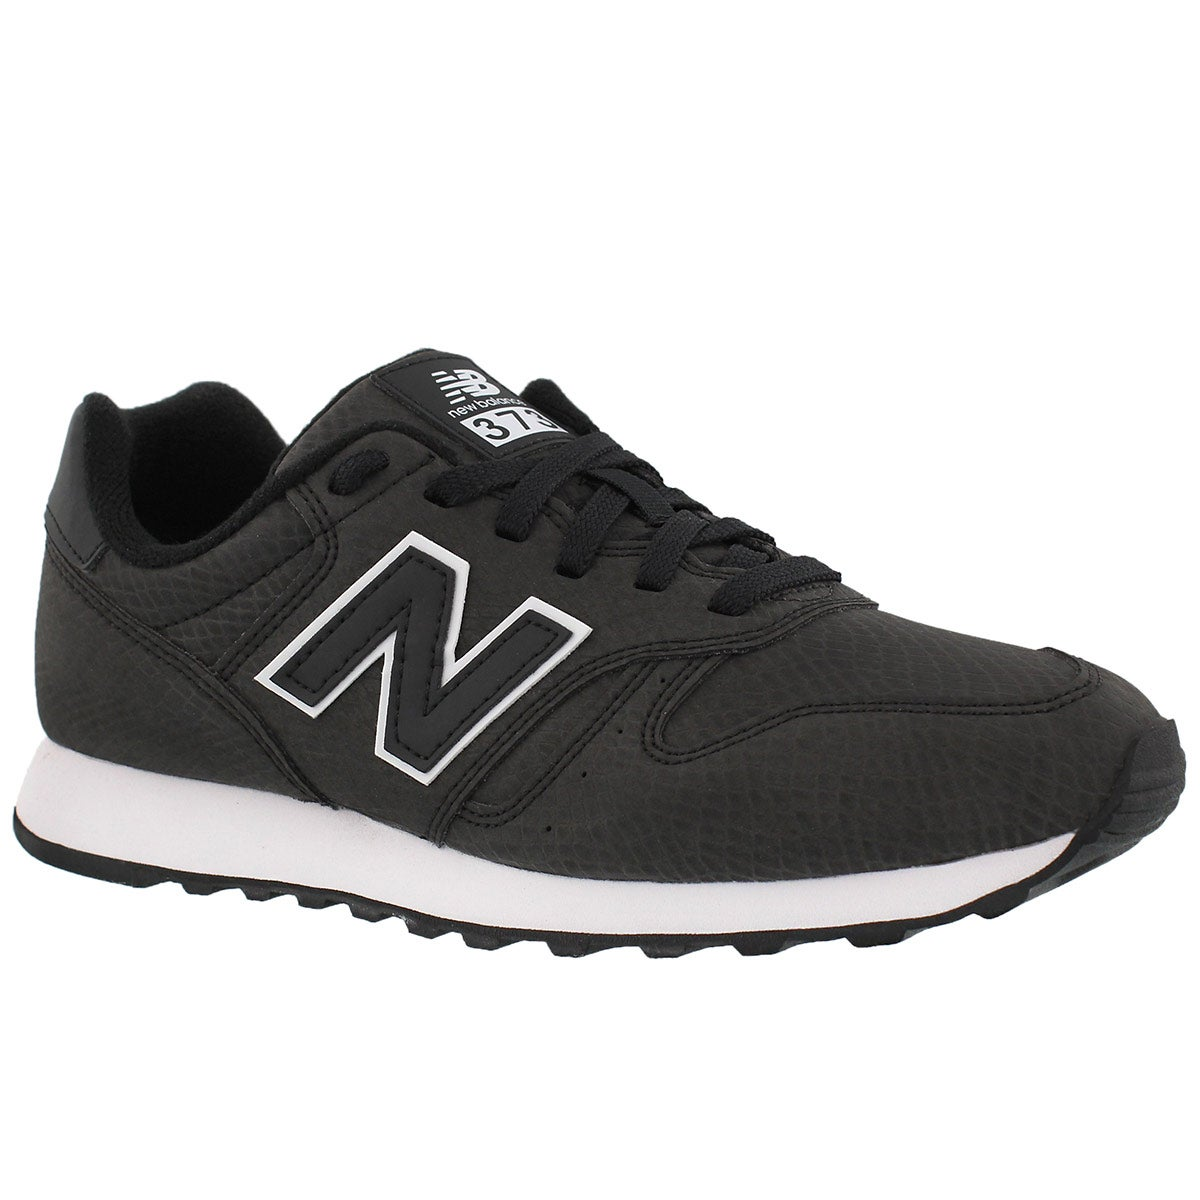 Women's 373 black lace up running shoes